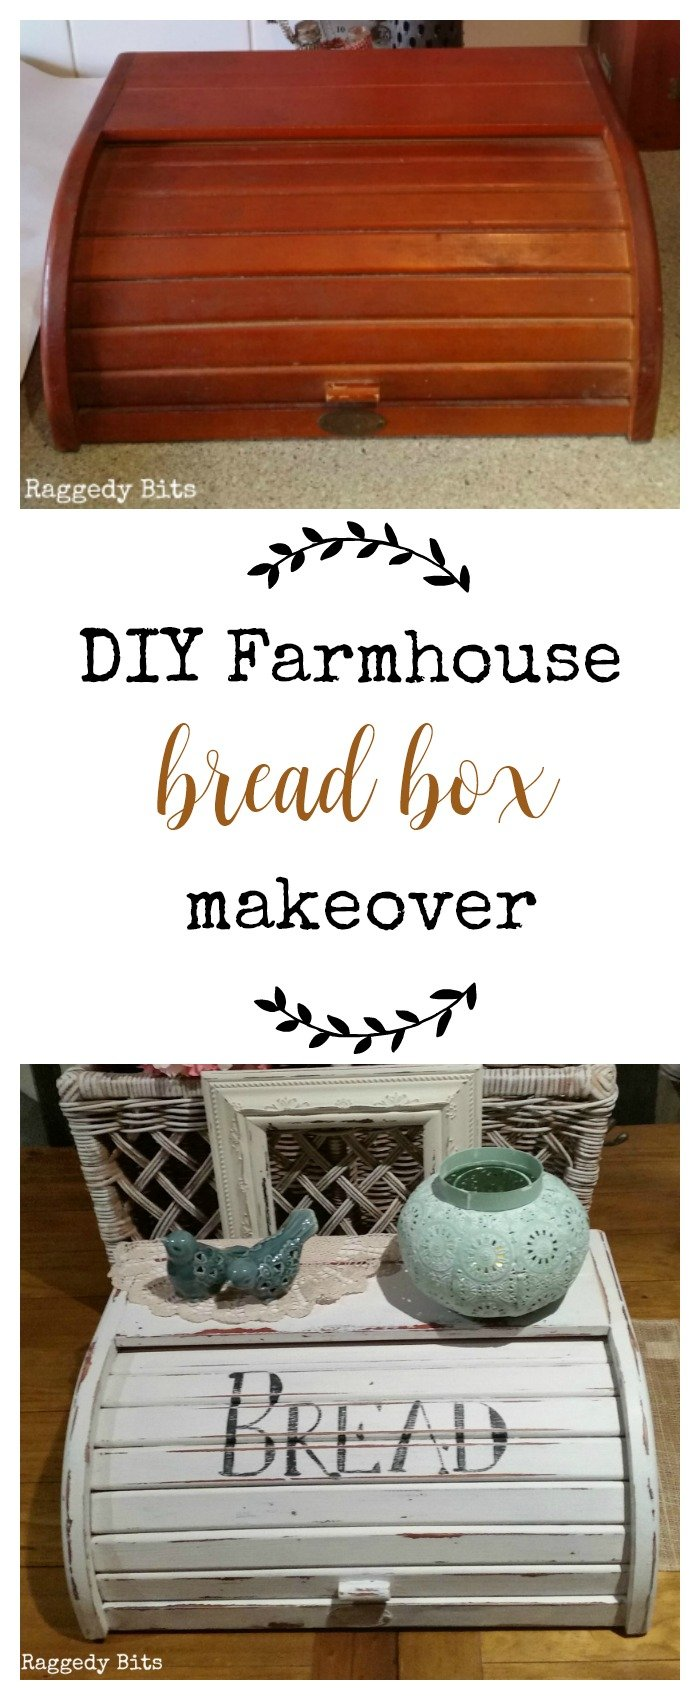 Have an old bread box? Sharing a fun DIY Farmhouse Bread Box Makeover | www.raggedy-bits.com